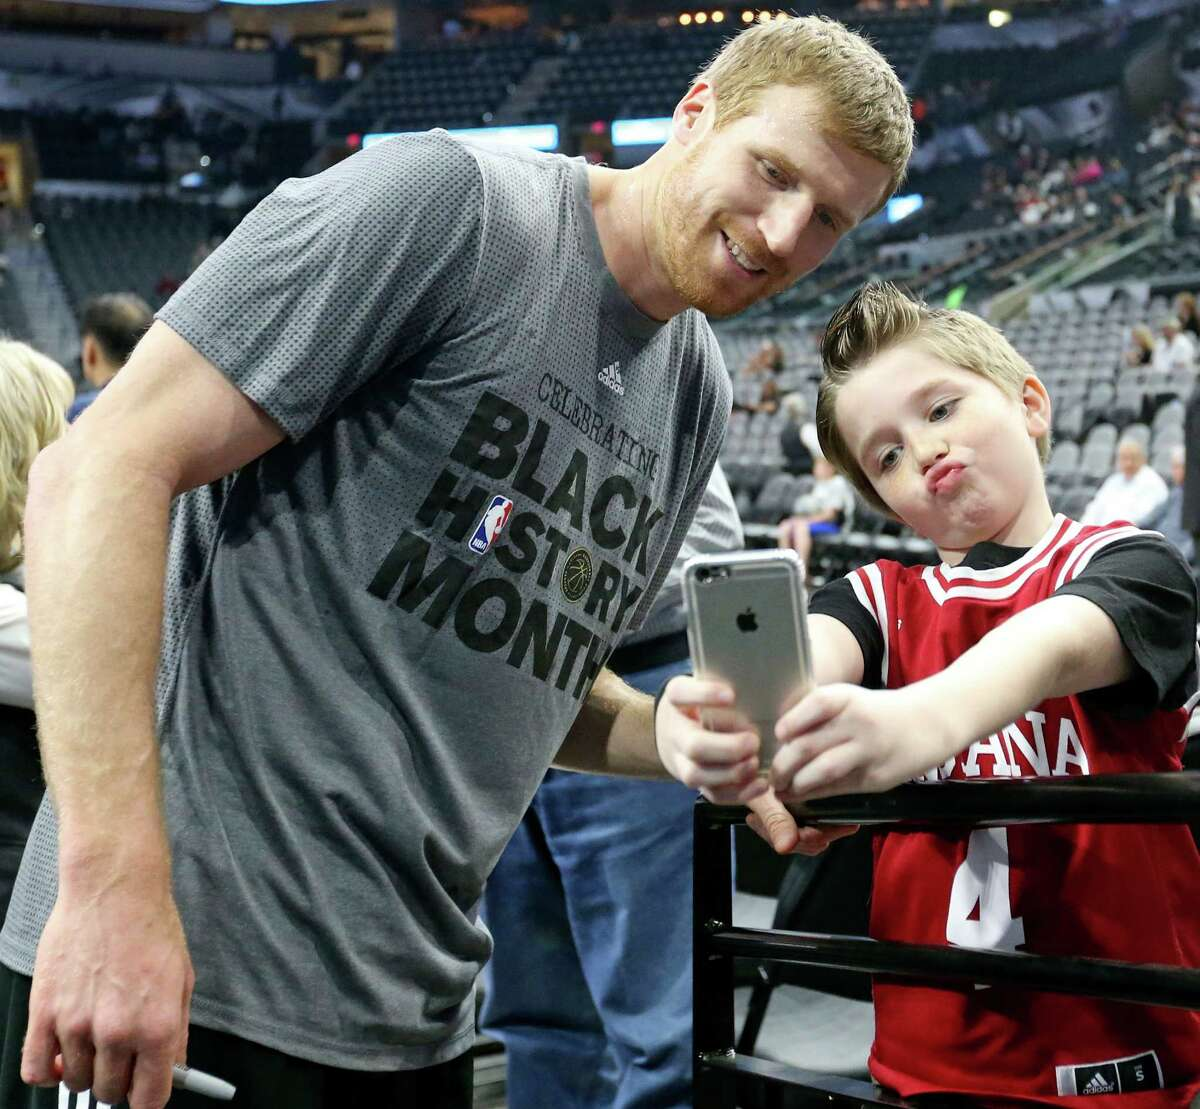 Spurs' Matt Bonner poses for a selfie with fan Cameron Collier before the game with the Orlando Magic on Feb. 1, 2016 at the AT&T Center.